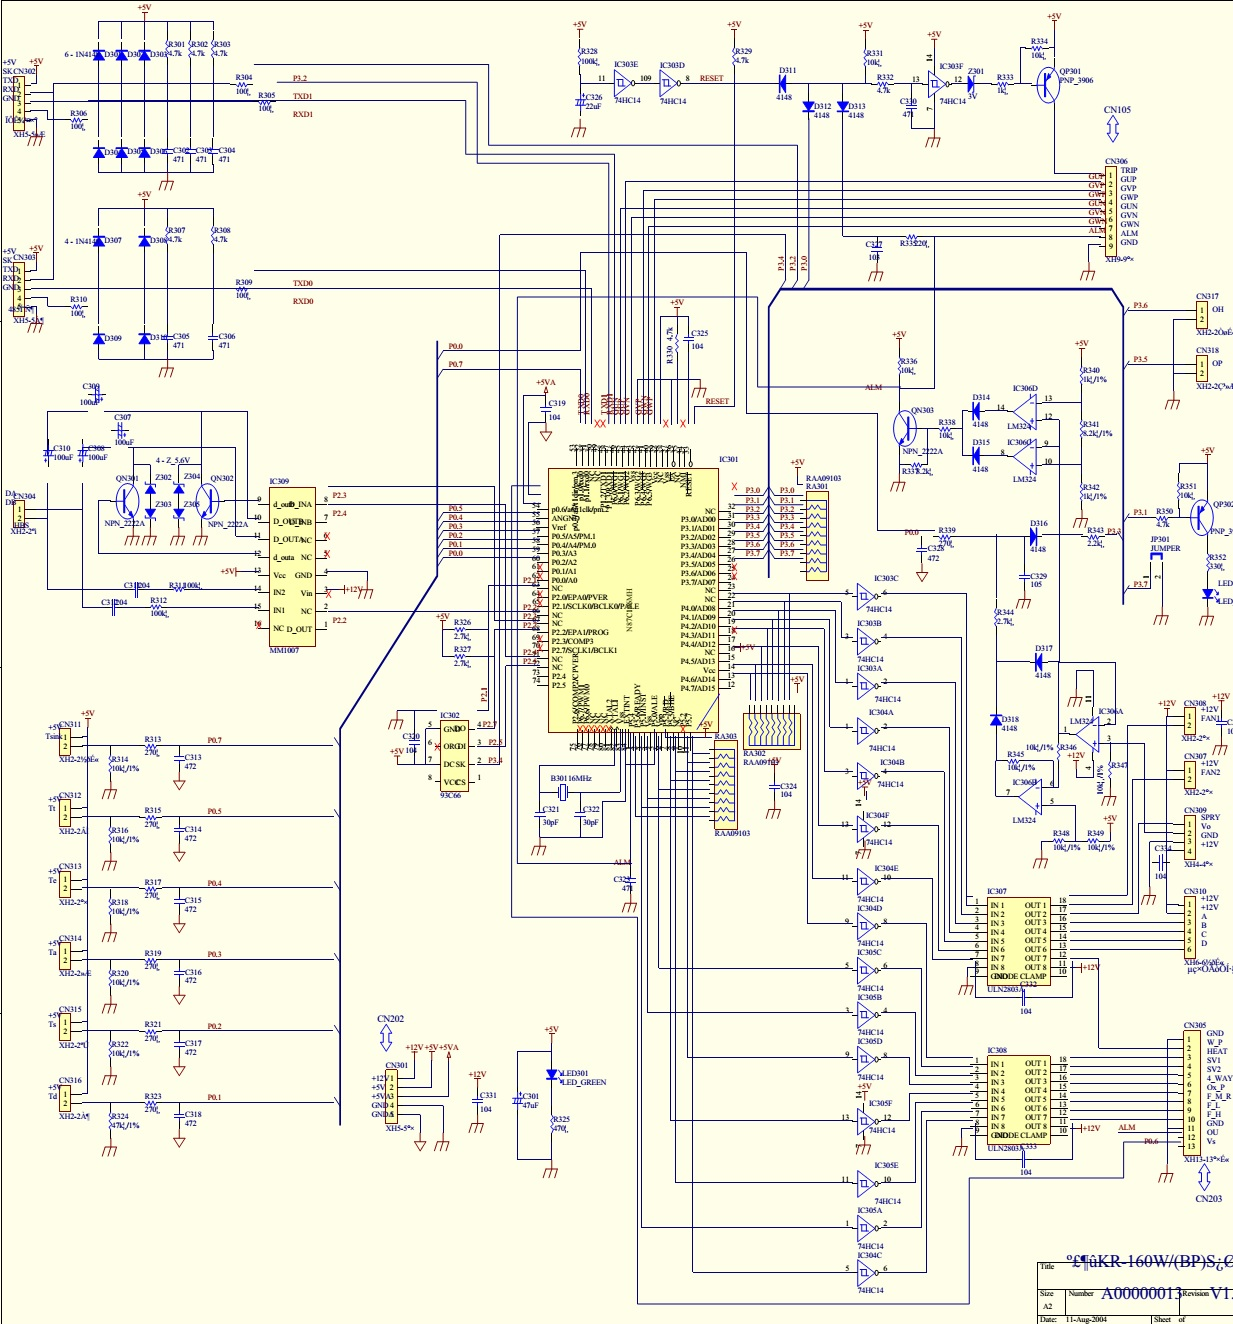 DIAGRAM] Rrtg18pabw Haier Refrigerator Wiring Diagram FULL ... on